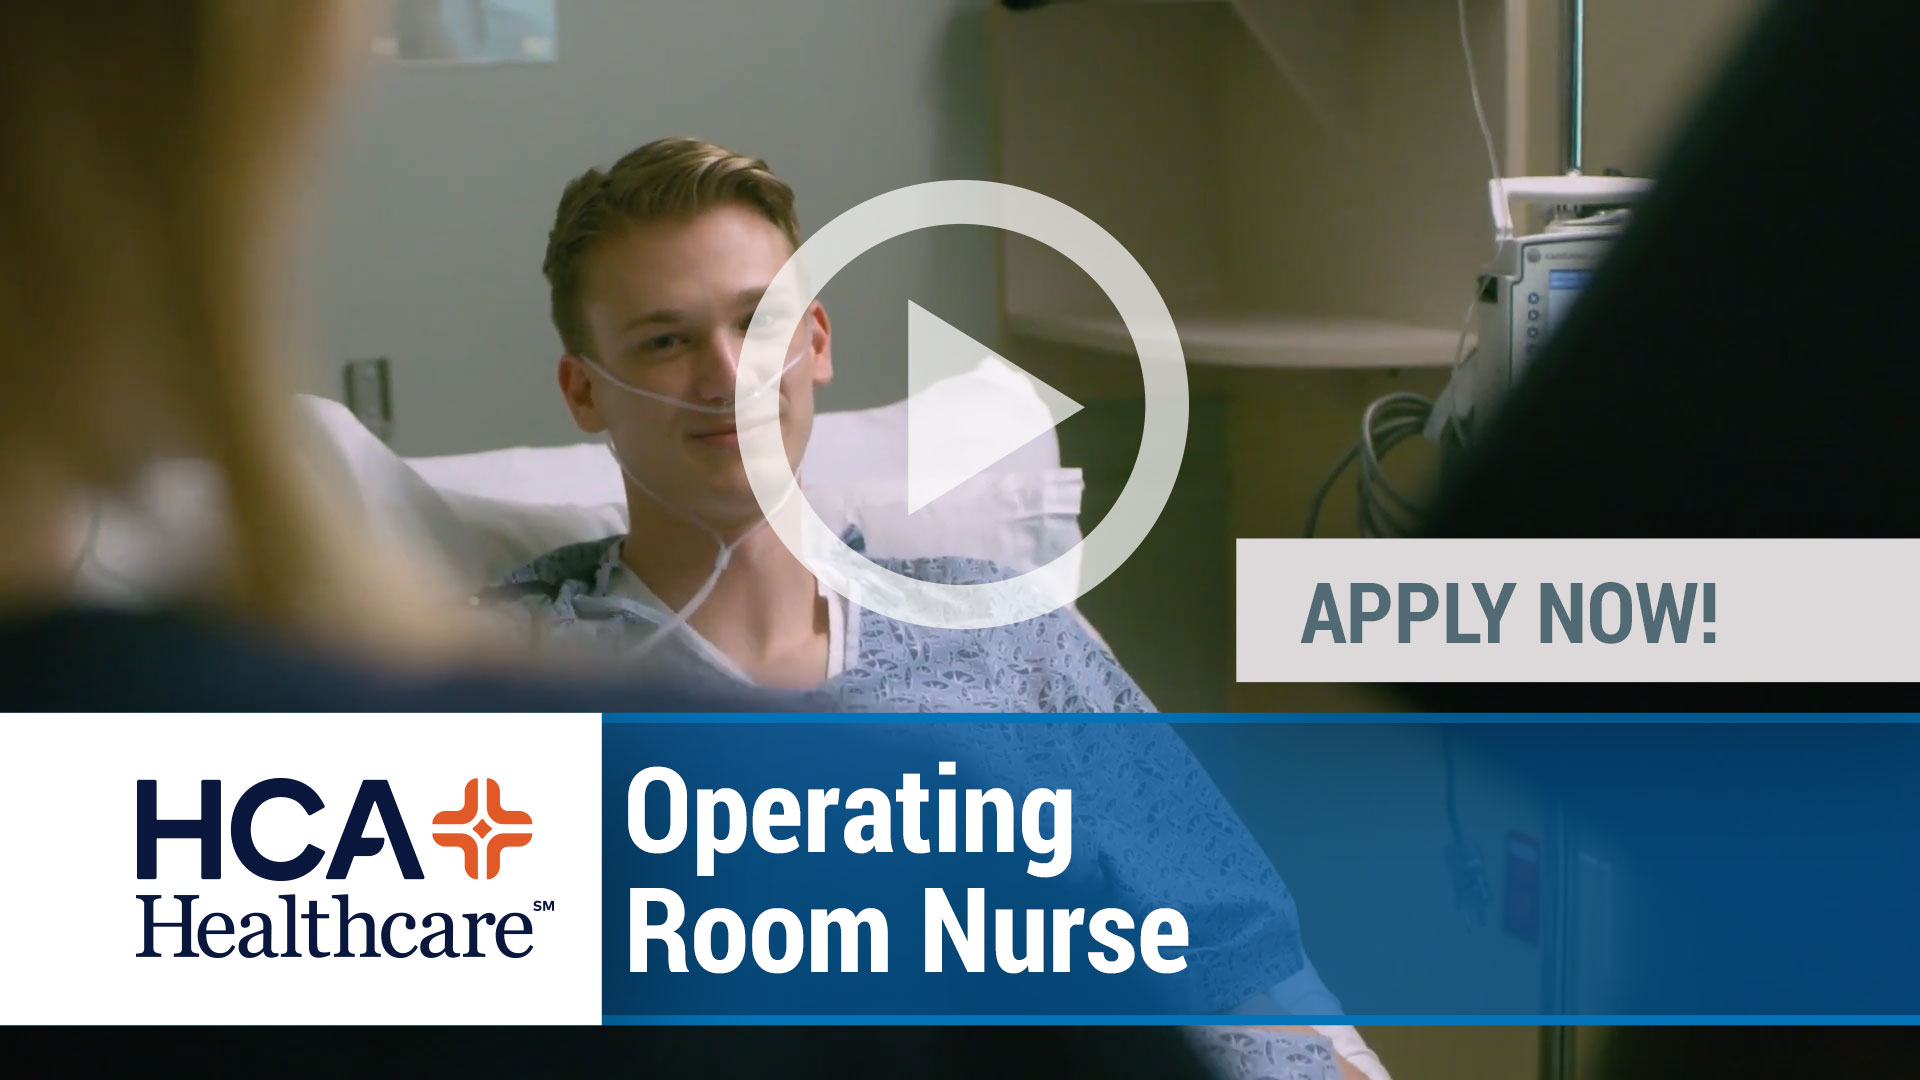 Watch our careers video for available job opening Operating Room Nurse in Kissimmee, Florida